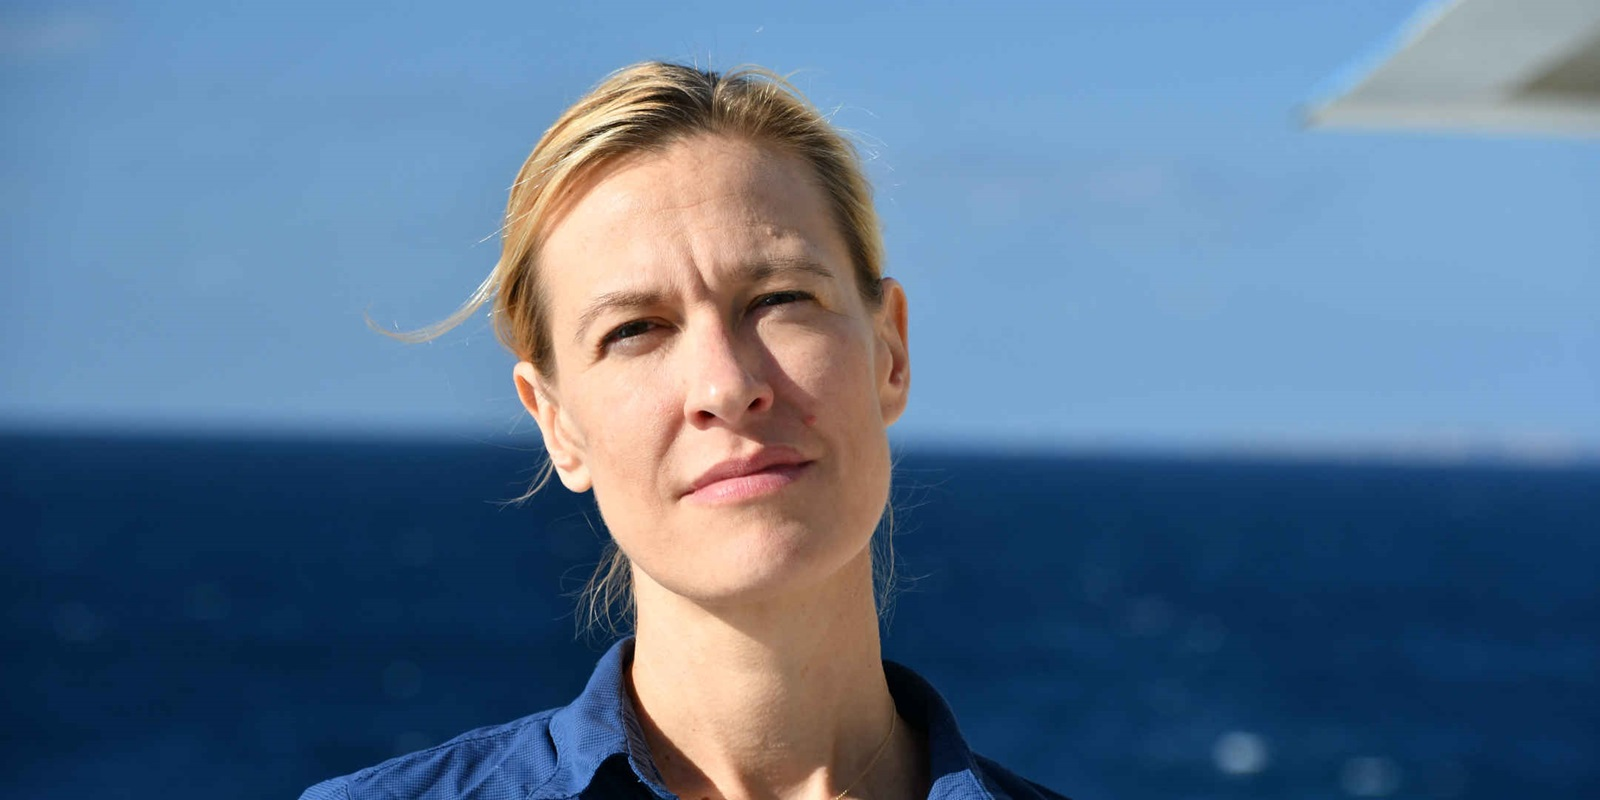 Curator of Ocean Science and Technology at the Australian National Maritime Museum – Emily Jateff